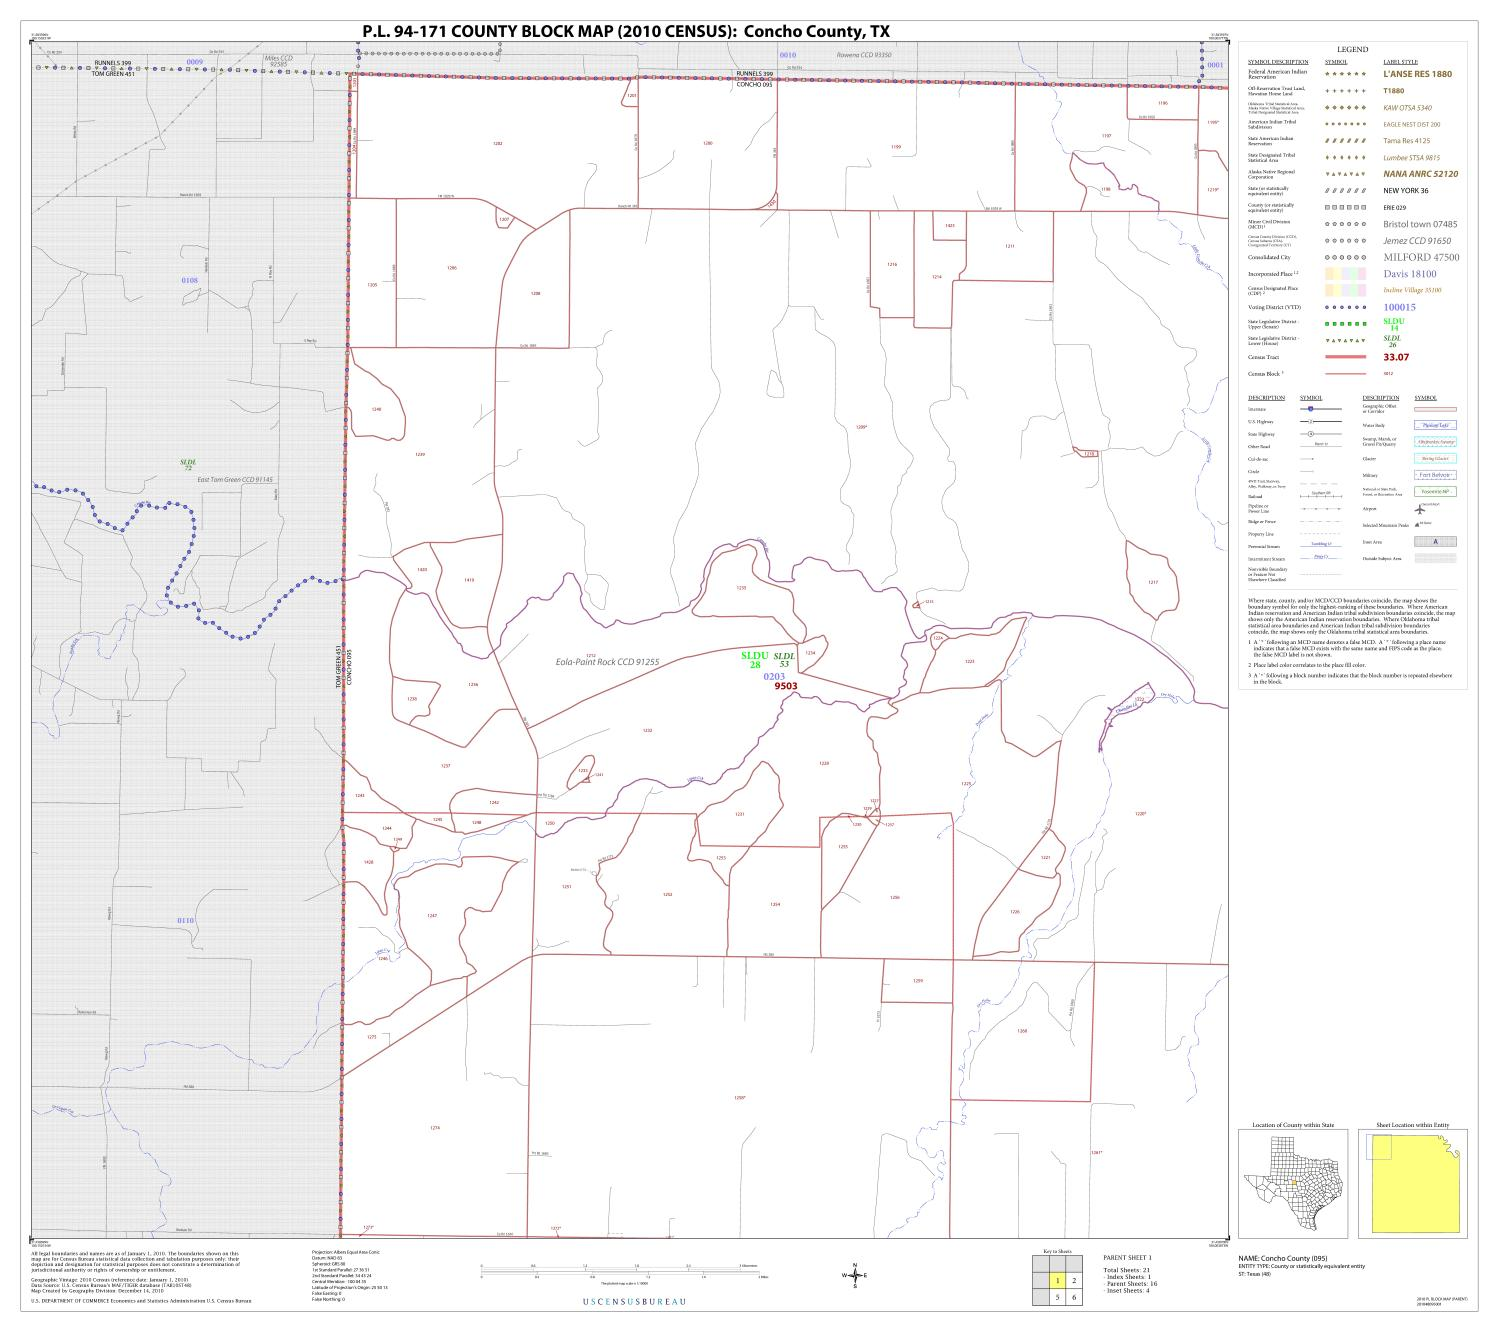 P.L. 94-171 County Block Map (2010 Census): Concho County, Block 1                                                                                                      [Sequence #]: 1 of 1